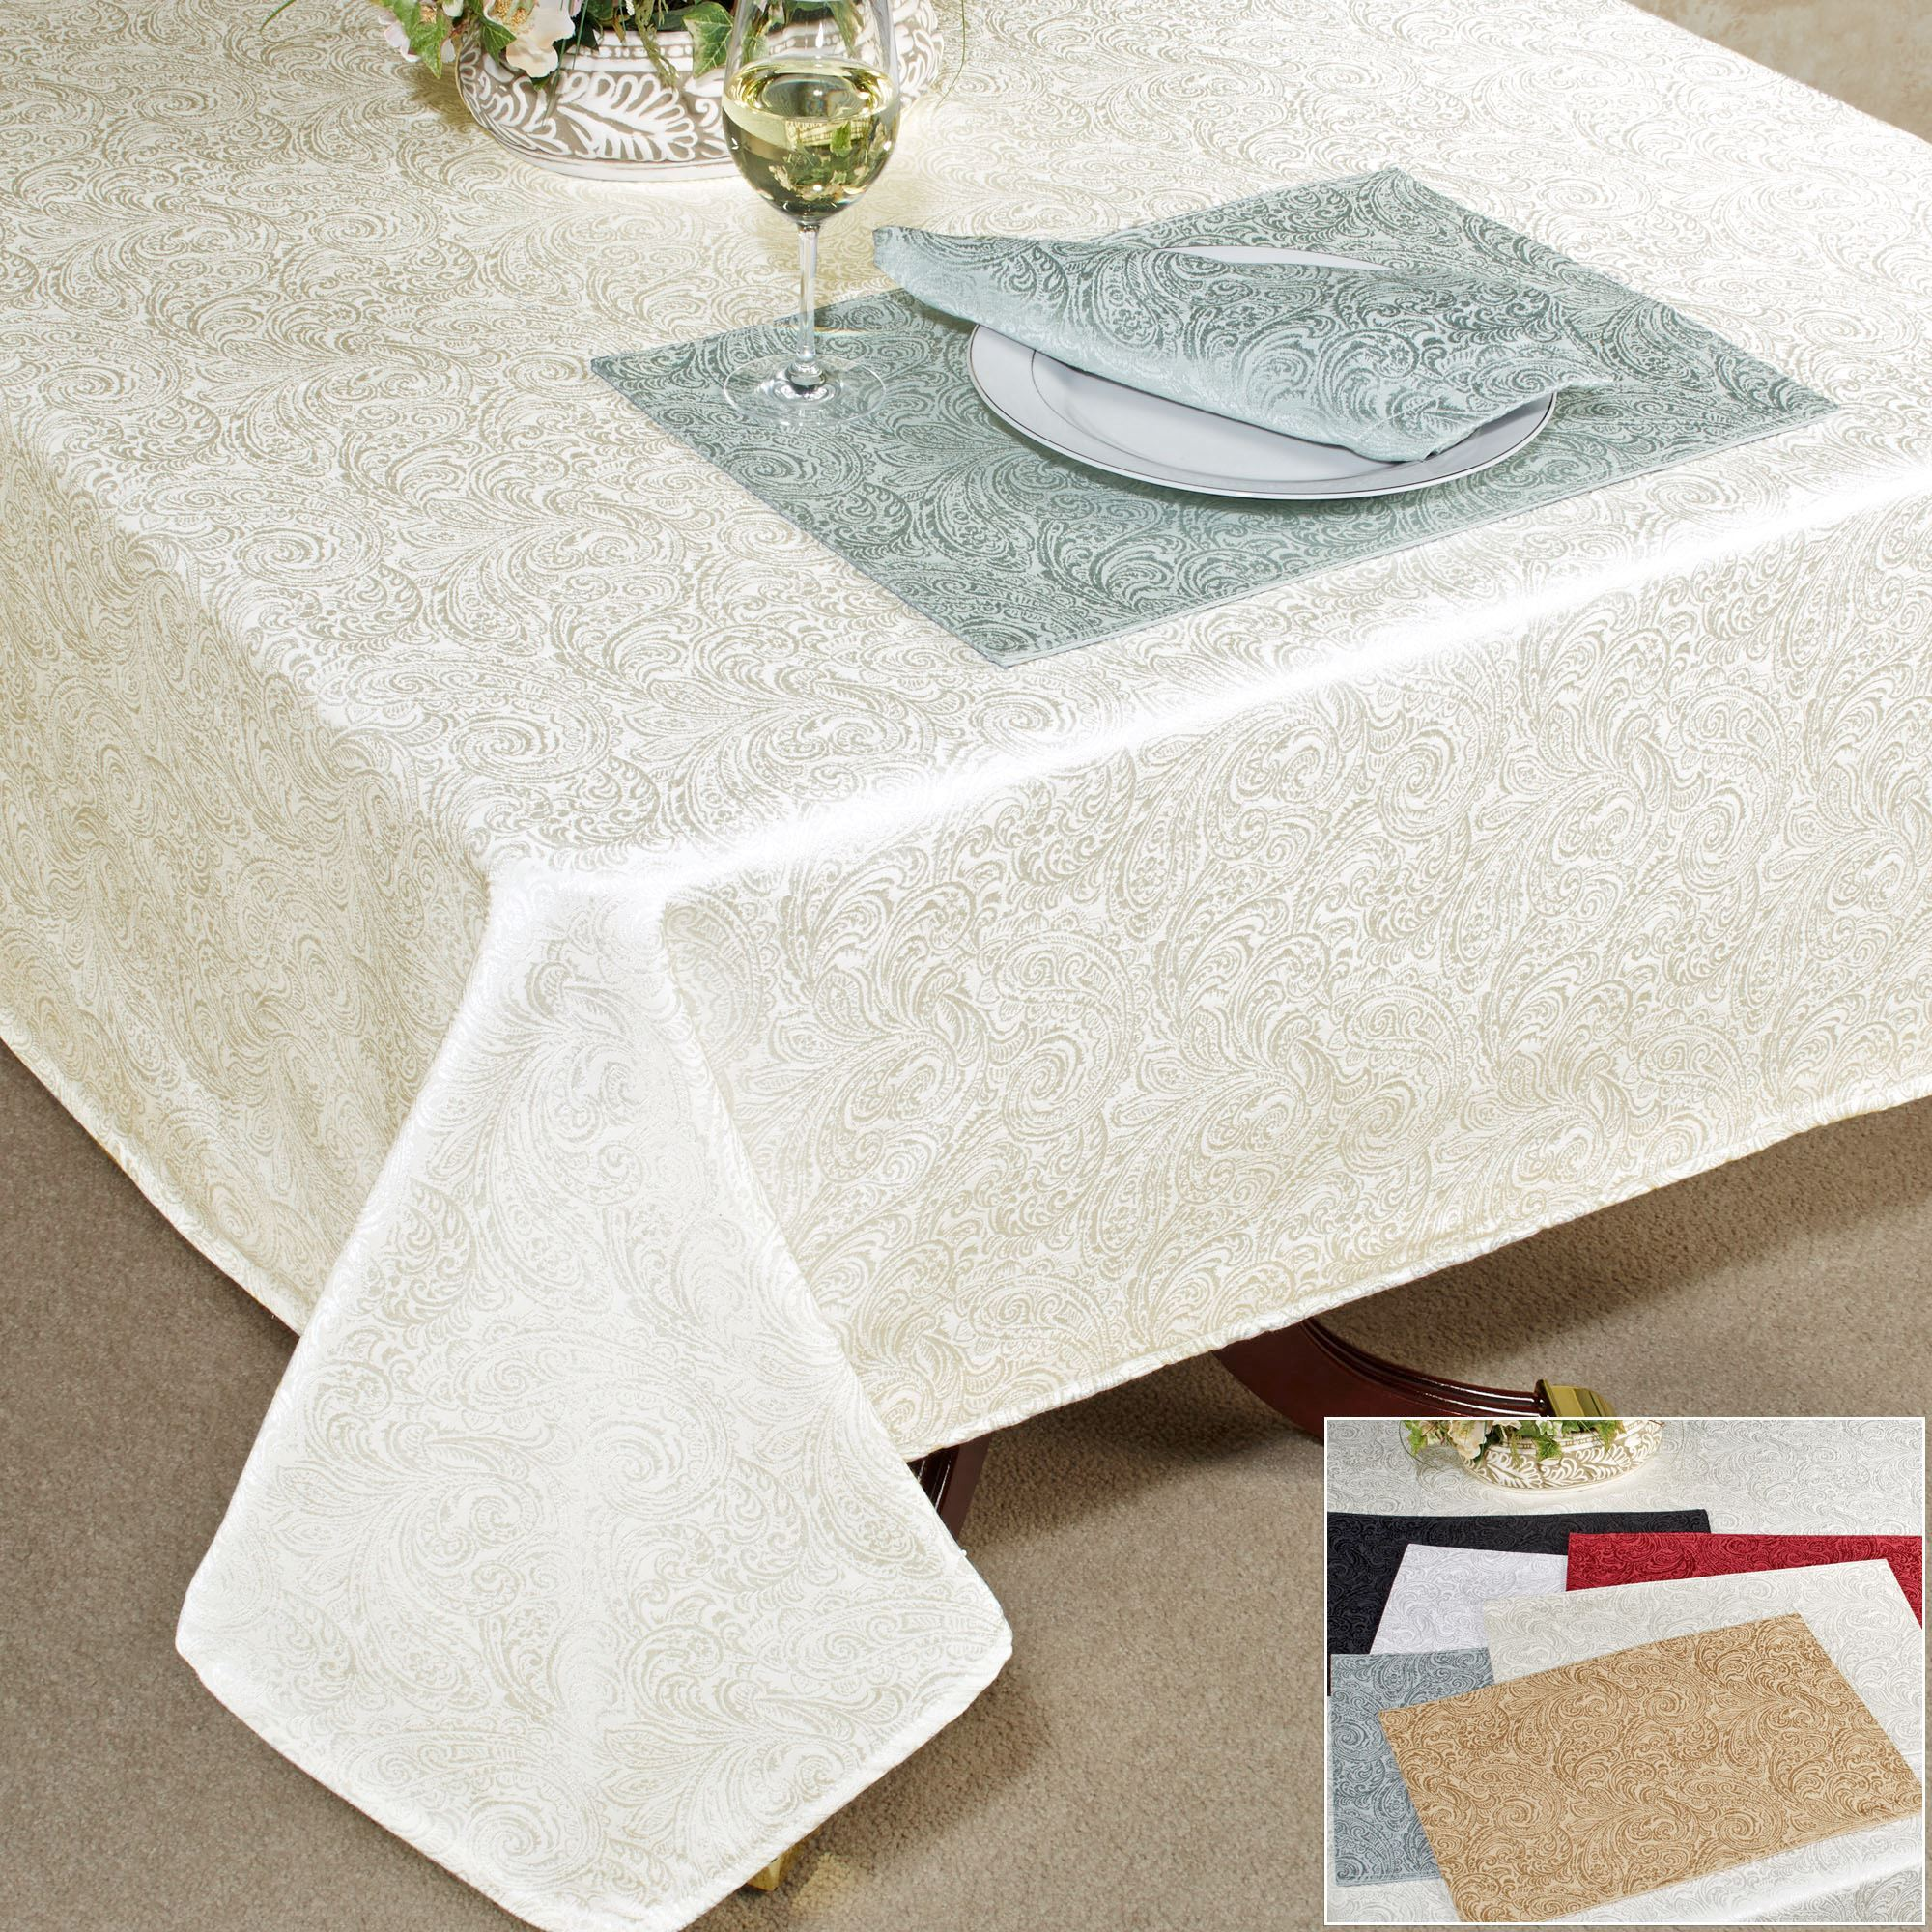 Overview. The Stylish Versatility And Exquisite Design Of The Chelsea  Paisley Table Linens ...